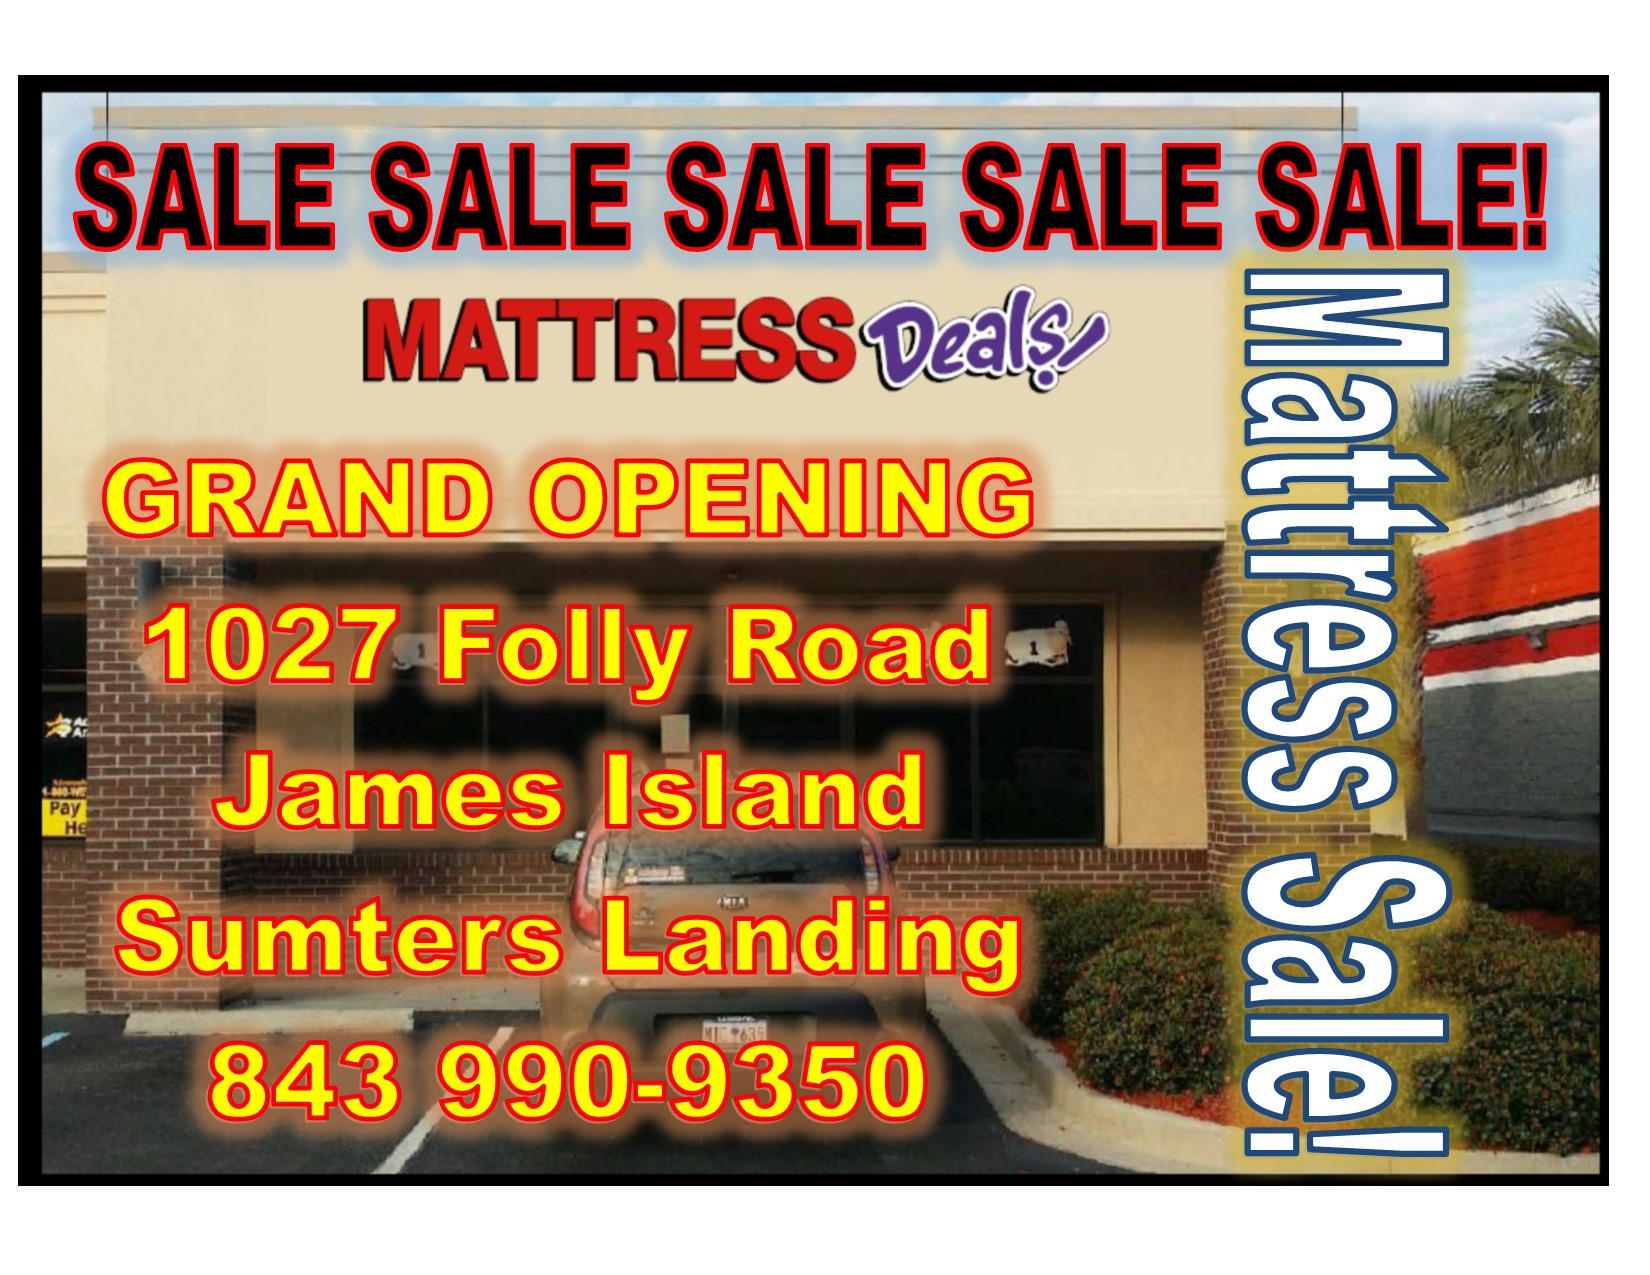 Mattress Deals image 82